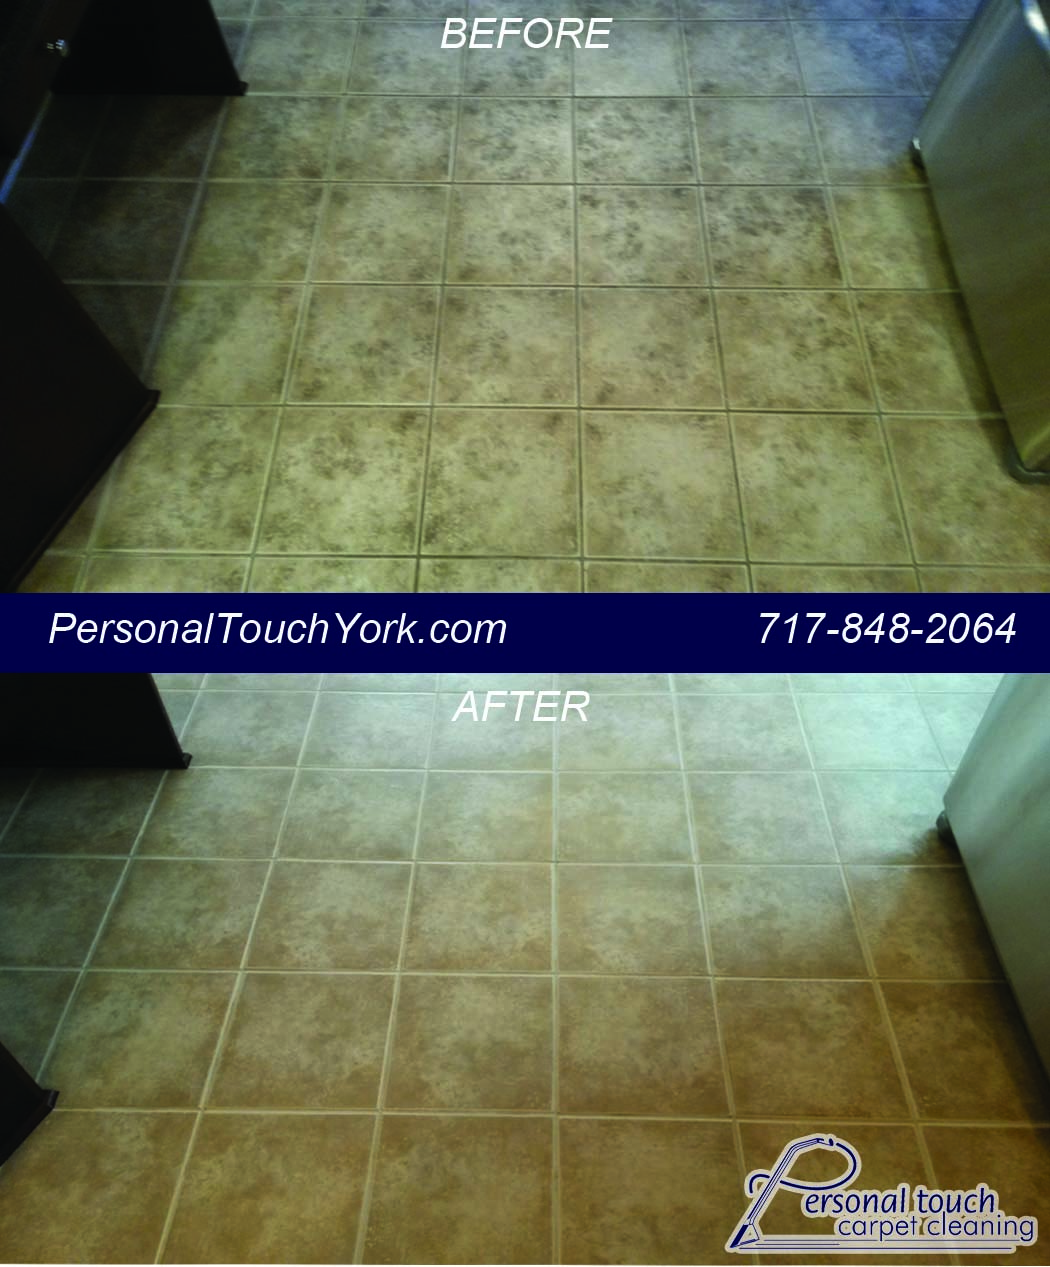 Tile & Grout Cleaning York PA 717-848-2064